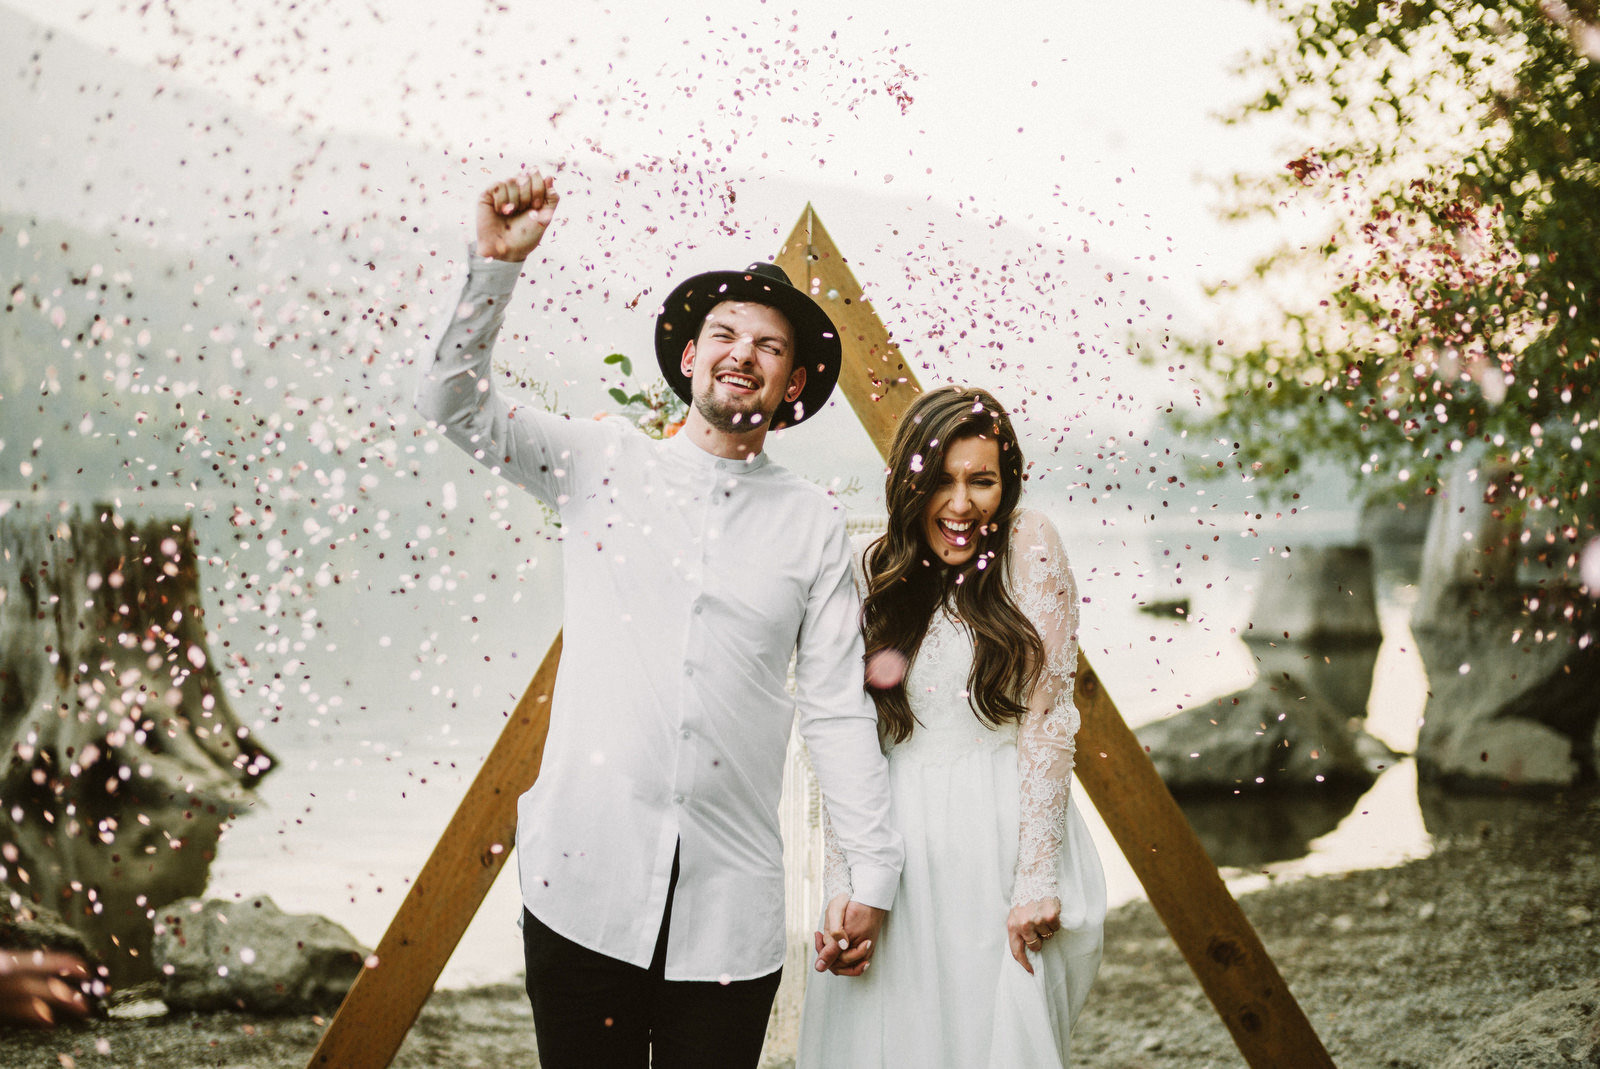 athena-and-camron-seattle-elopement-wedding-benj-haisch-rattlesnake-lake-christian-couple-goals62